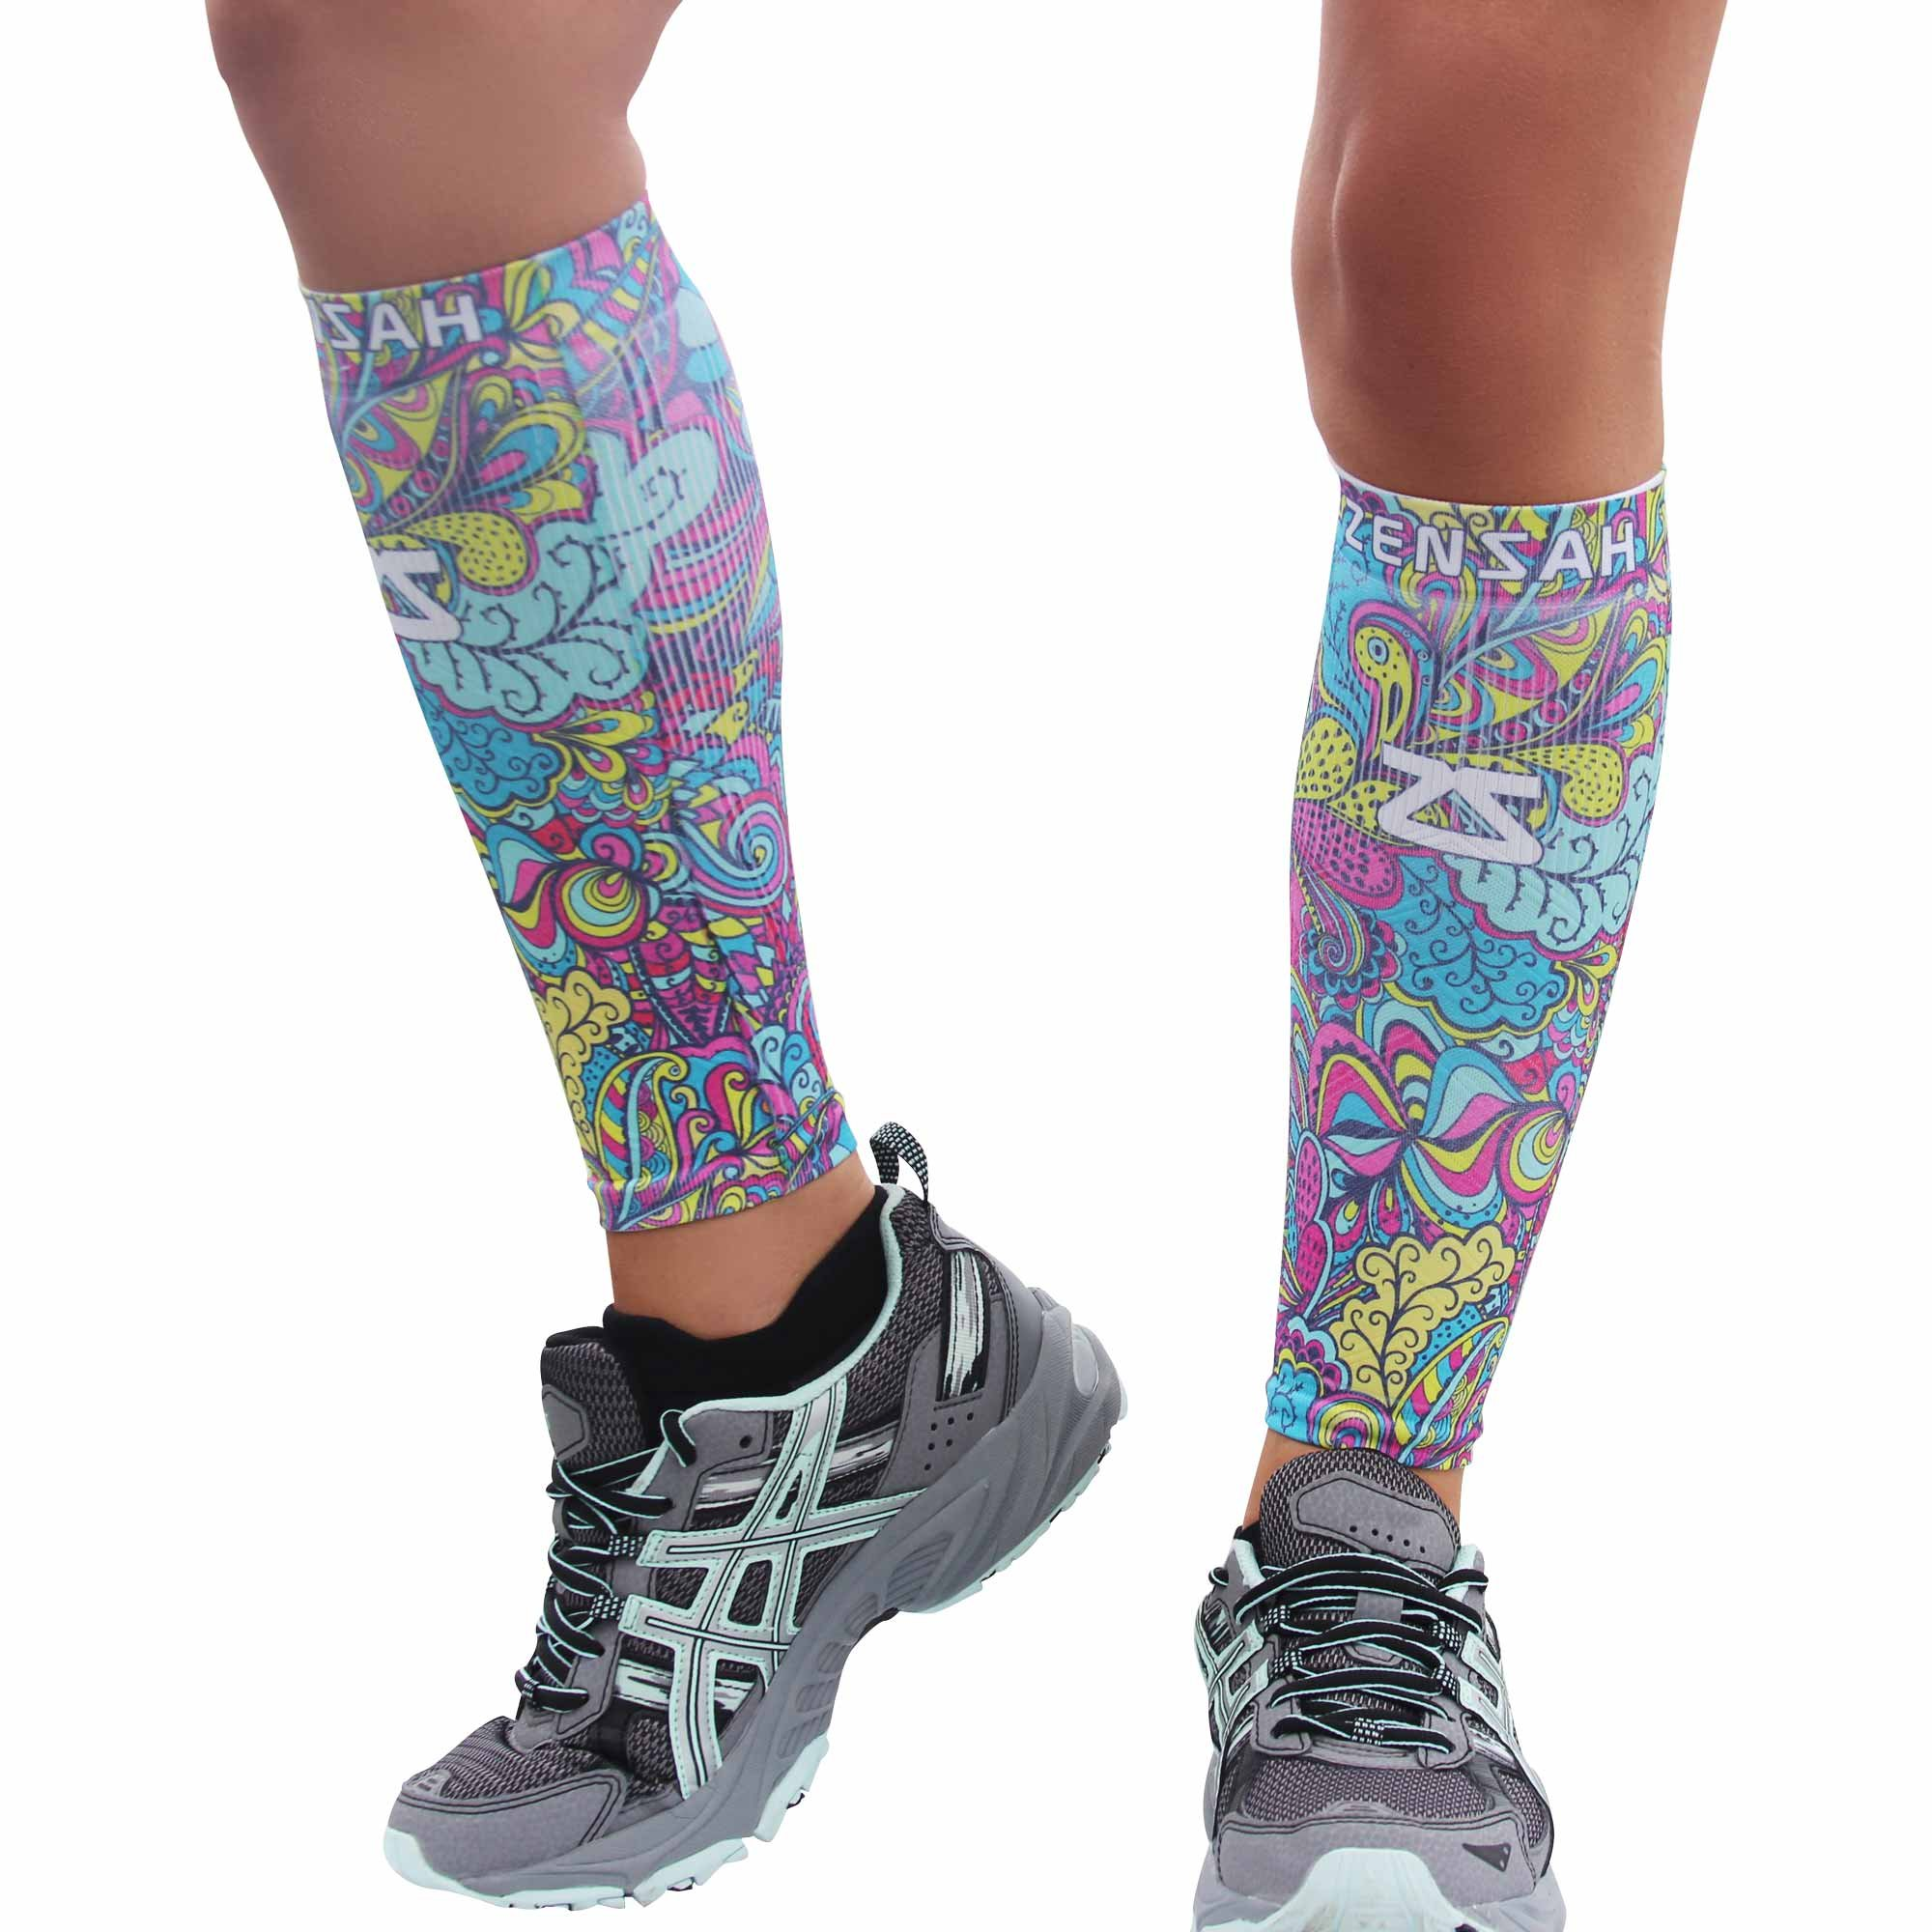 Zensah Design Limited Edition Leg Sleeves, Summer Bloom, X-Small/Small by Zensah